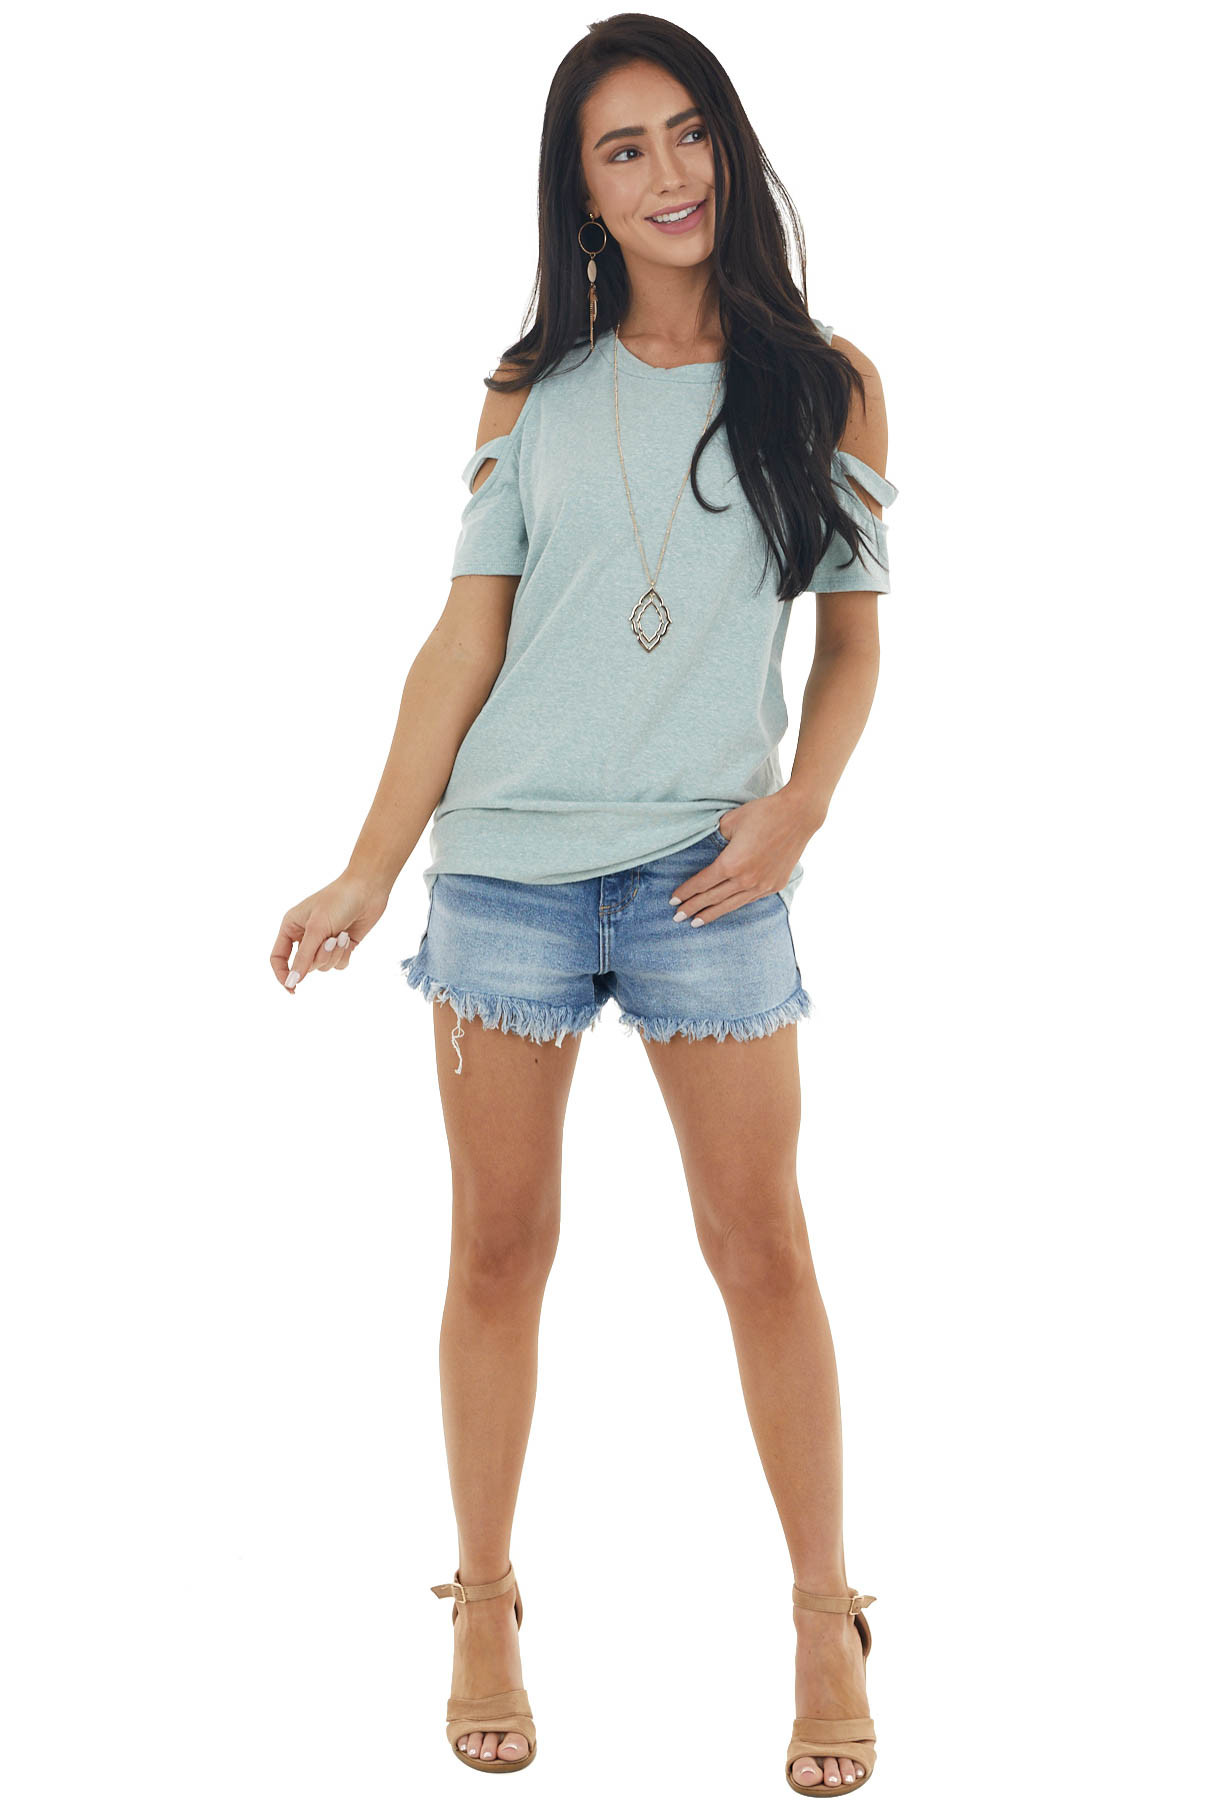 Faded Teal Short Sleeve Stretchy Knit Top with Cold Shoulder